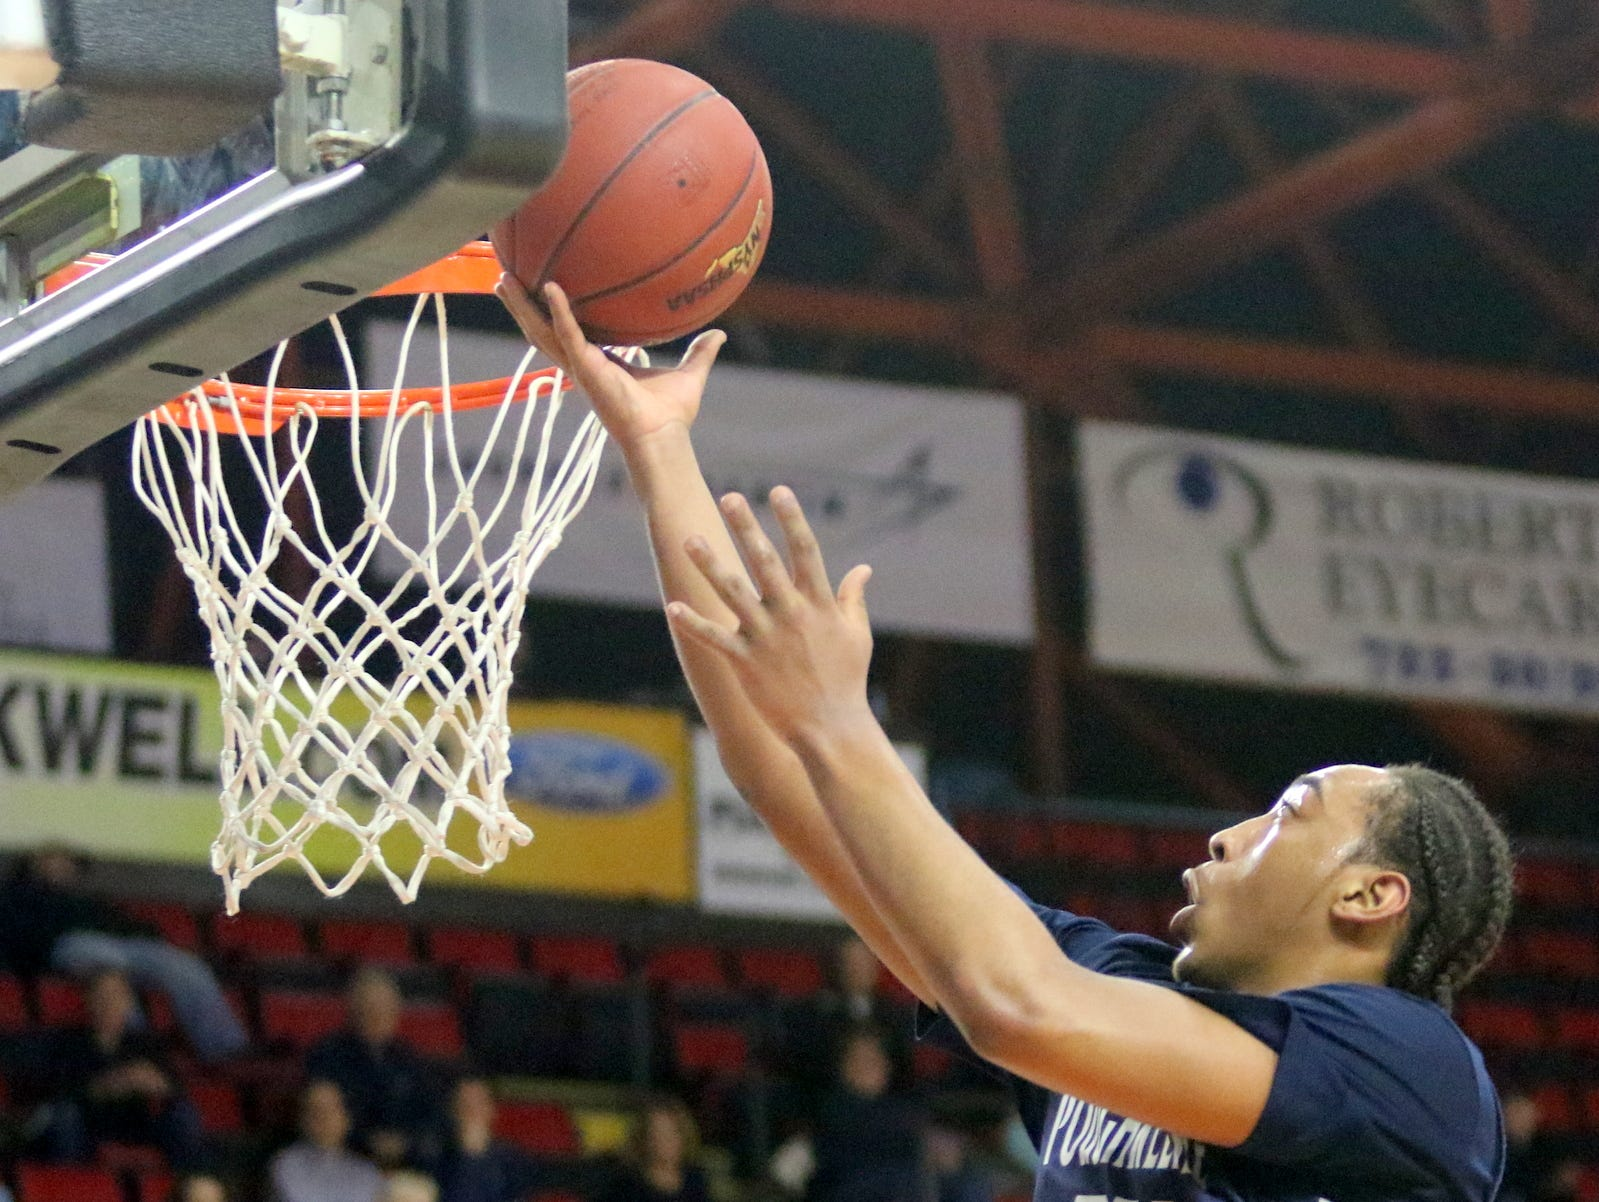 Davontrey Thomas of Poughkeepsie goes in for a layup against Manhasset during a Class B boys basketball state semifinal March 15, 2019 at Floyd L. Maines Veterans Memorial Arena in Binghamton.